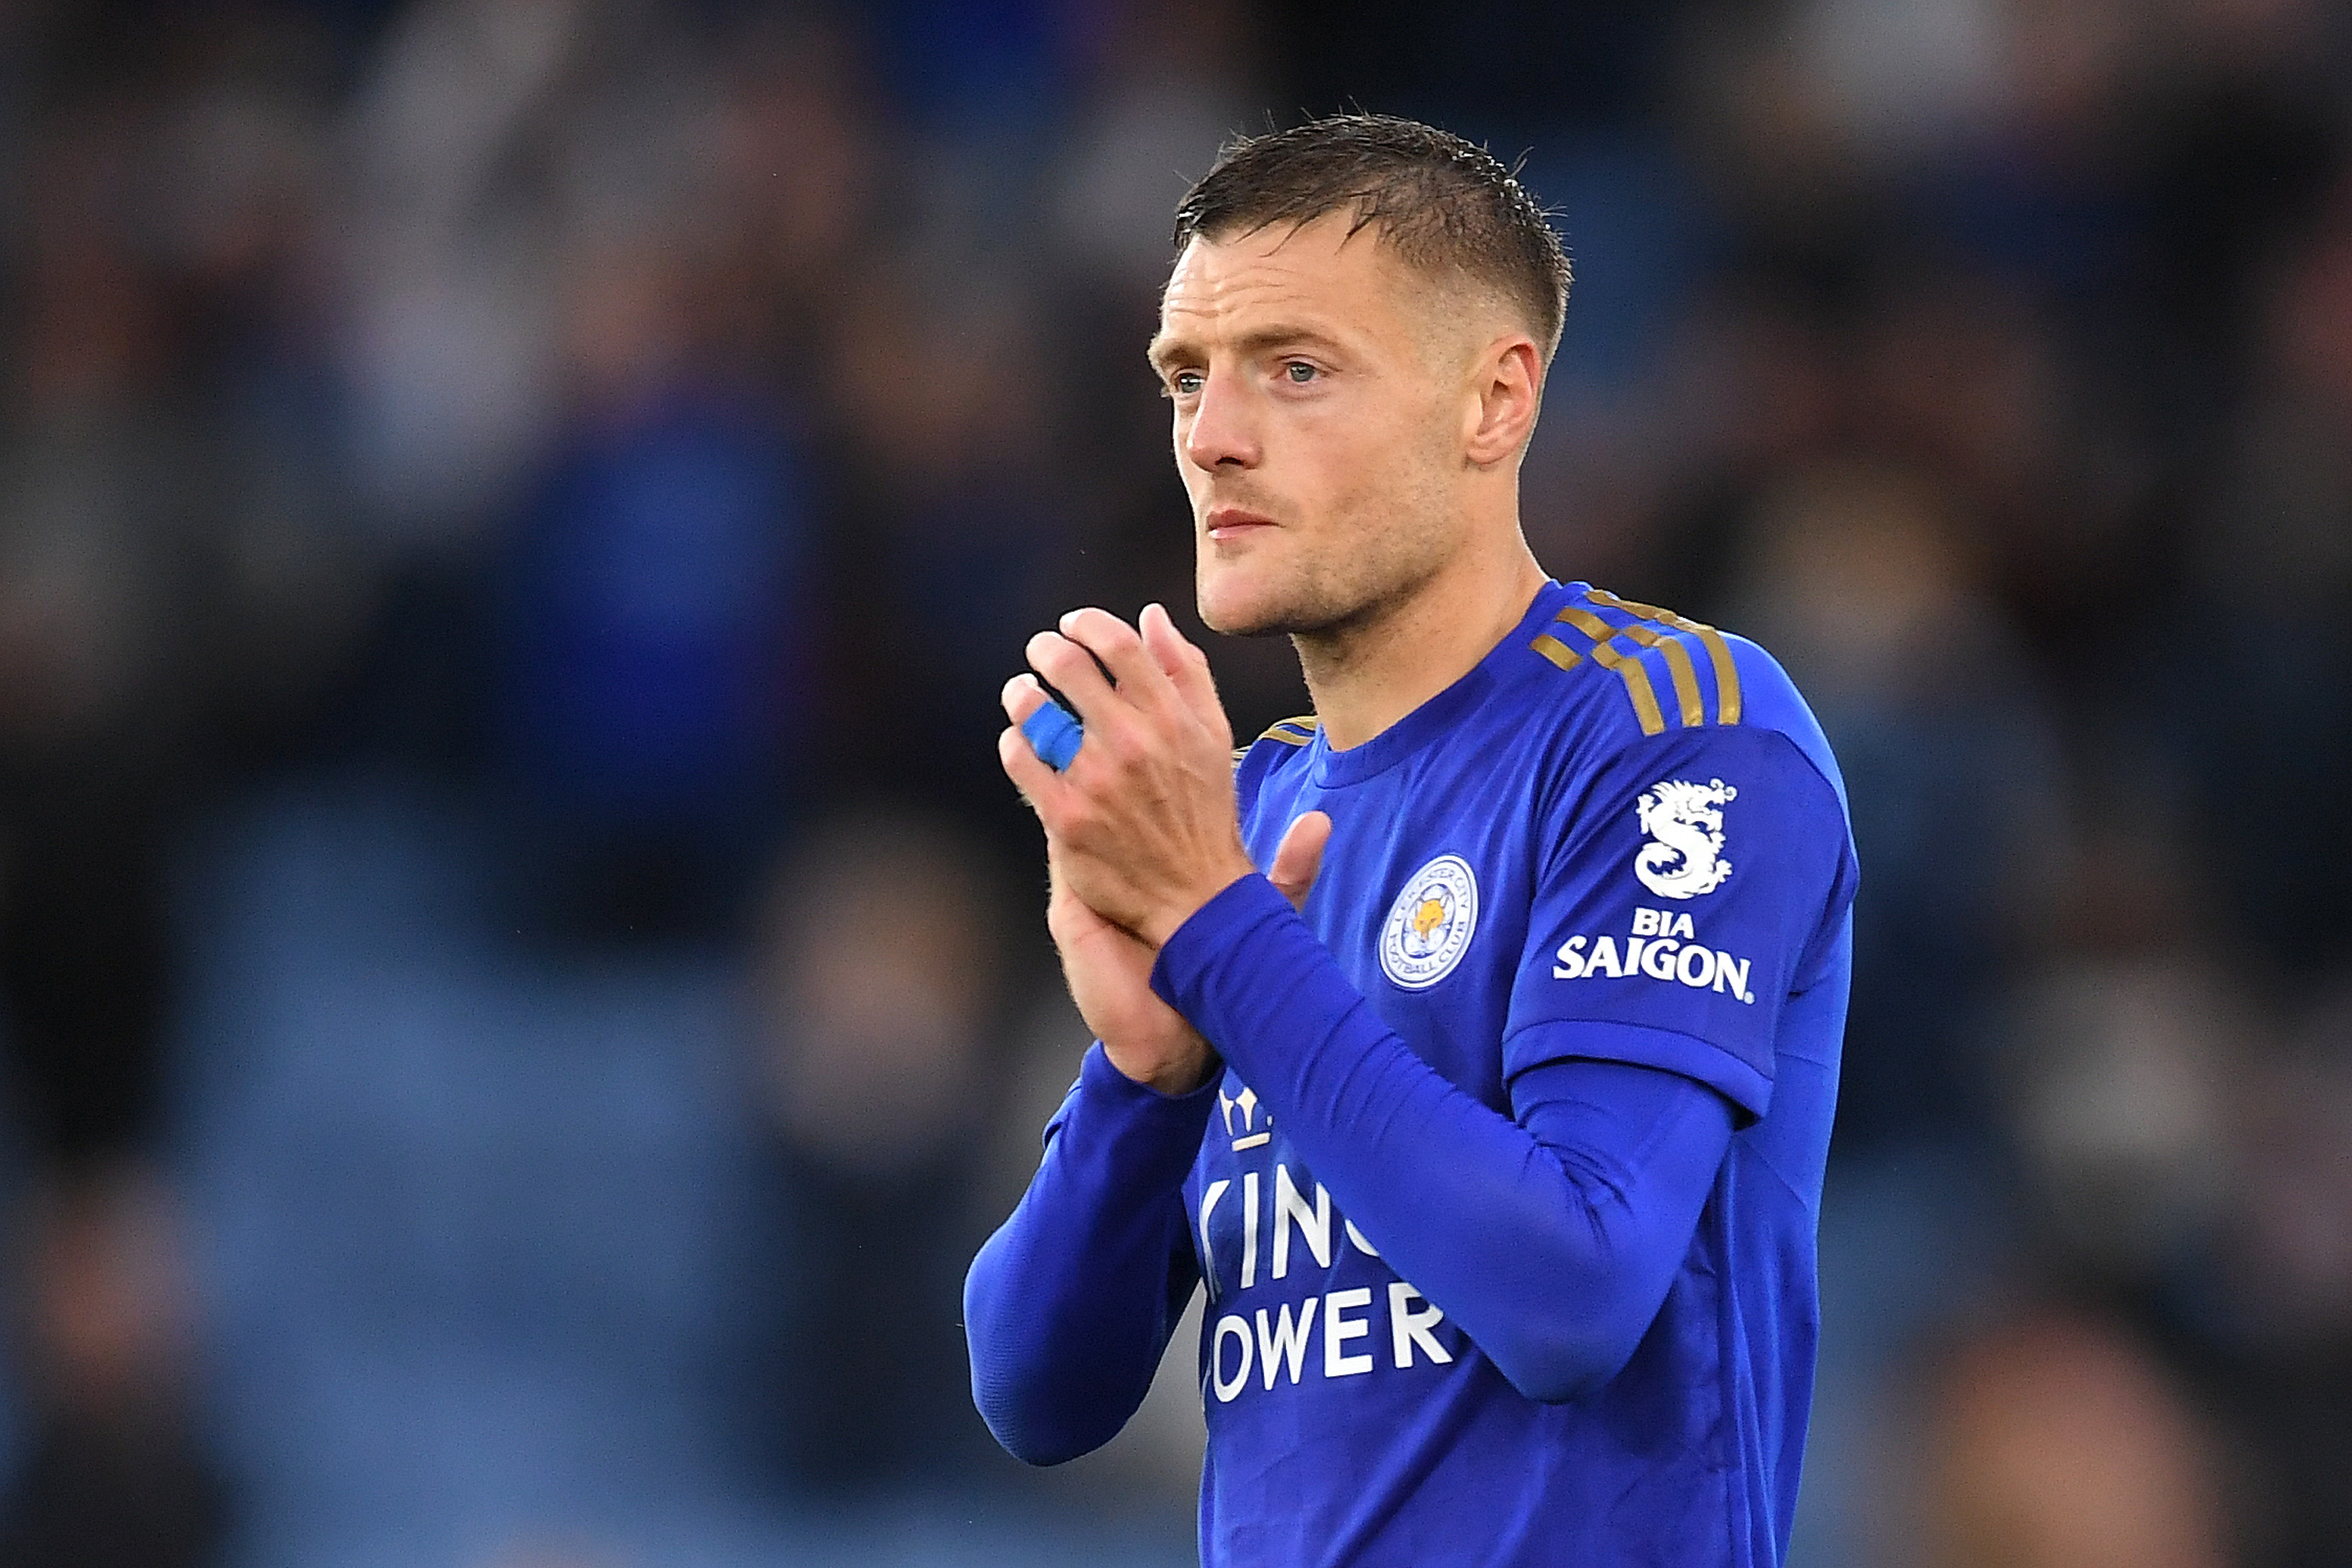 Manchester United urged to sign Jamie Vardy by Lee Sharpe. (Photo by Michael Regan/Getty Images)